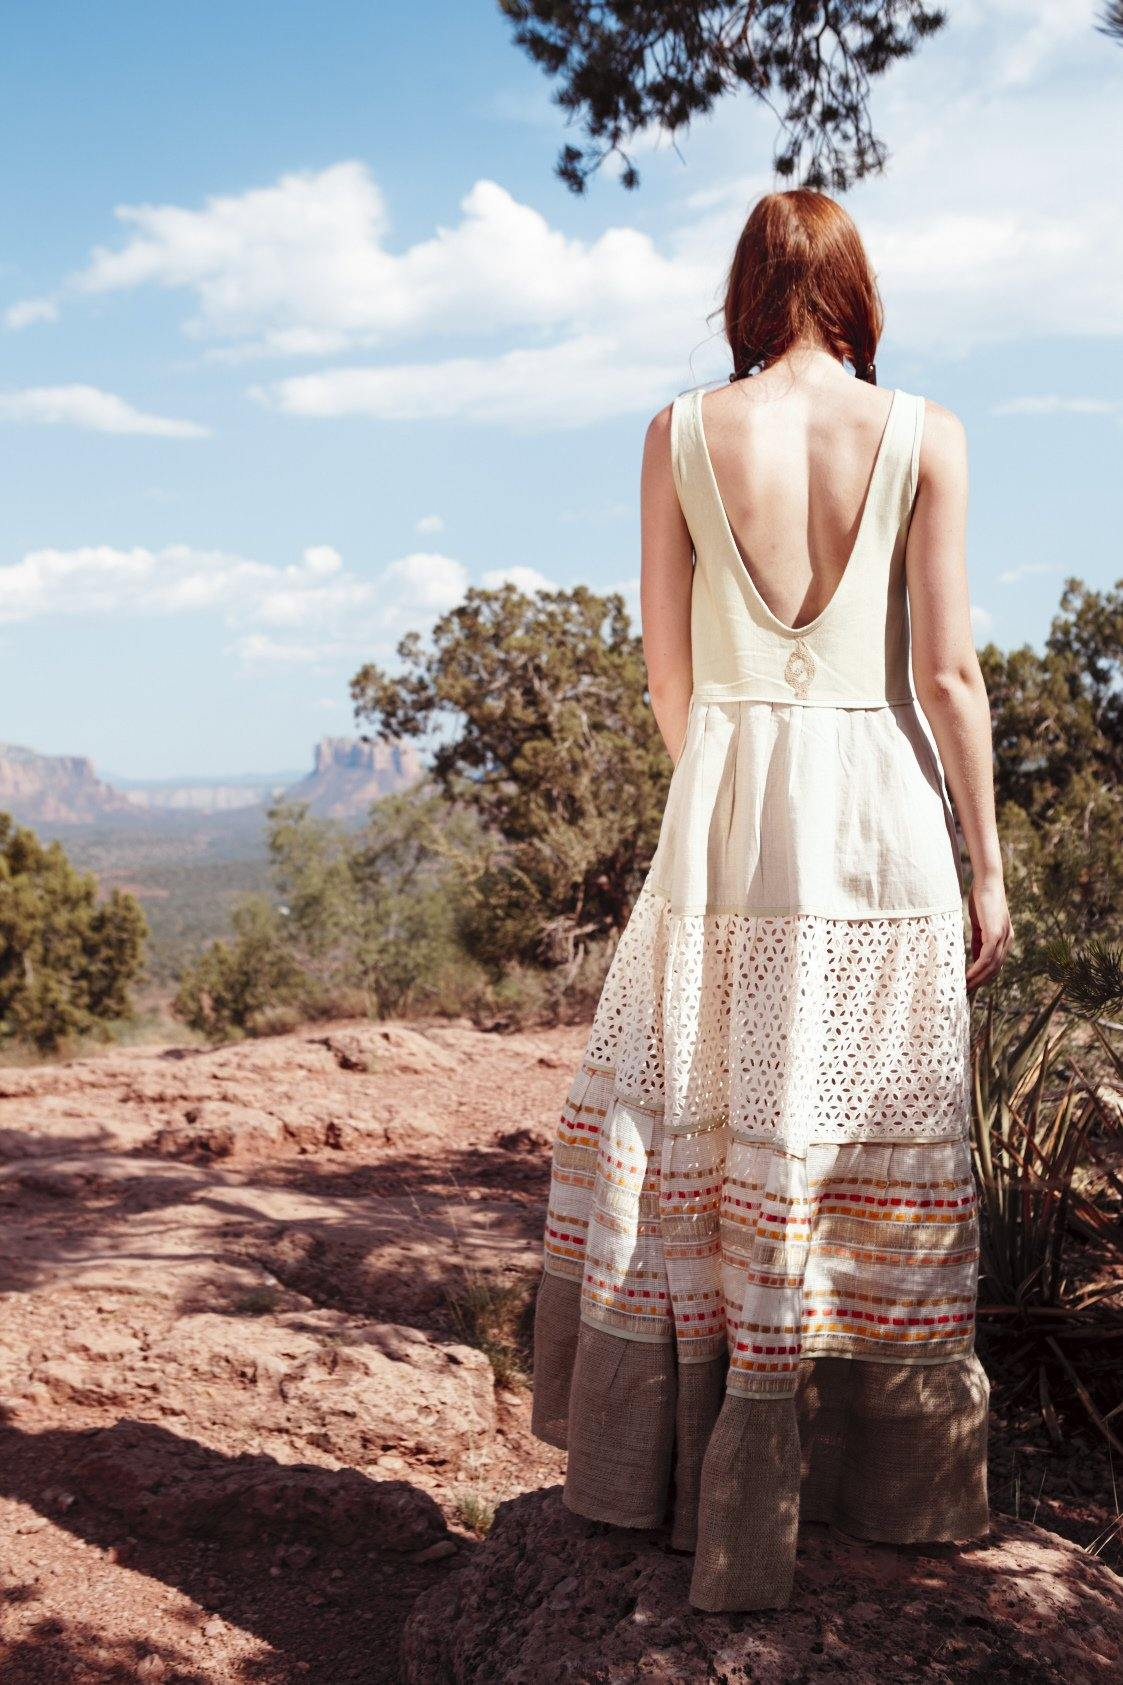 DANIELA ORANGE - HANDWOVEN COTTON DRESS - NATURAL ROUGH